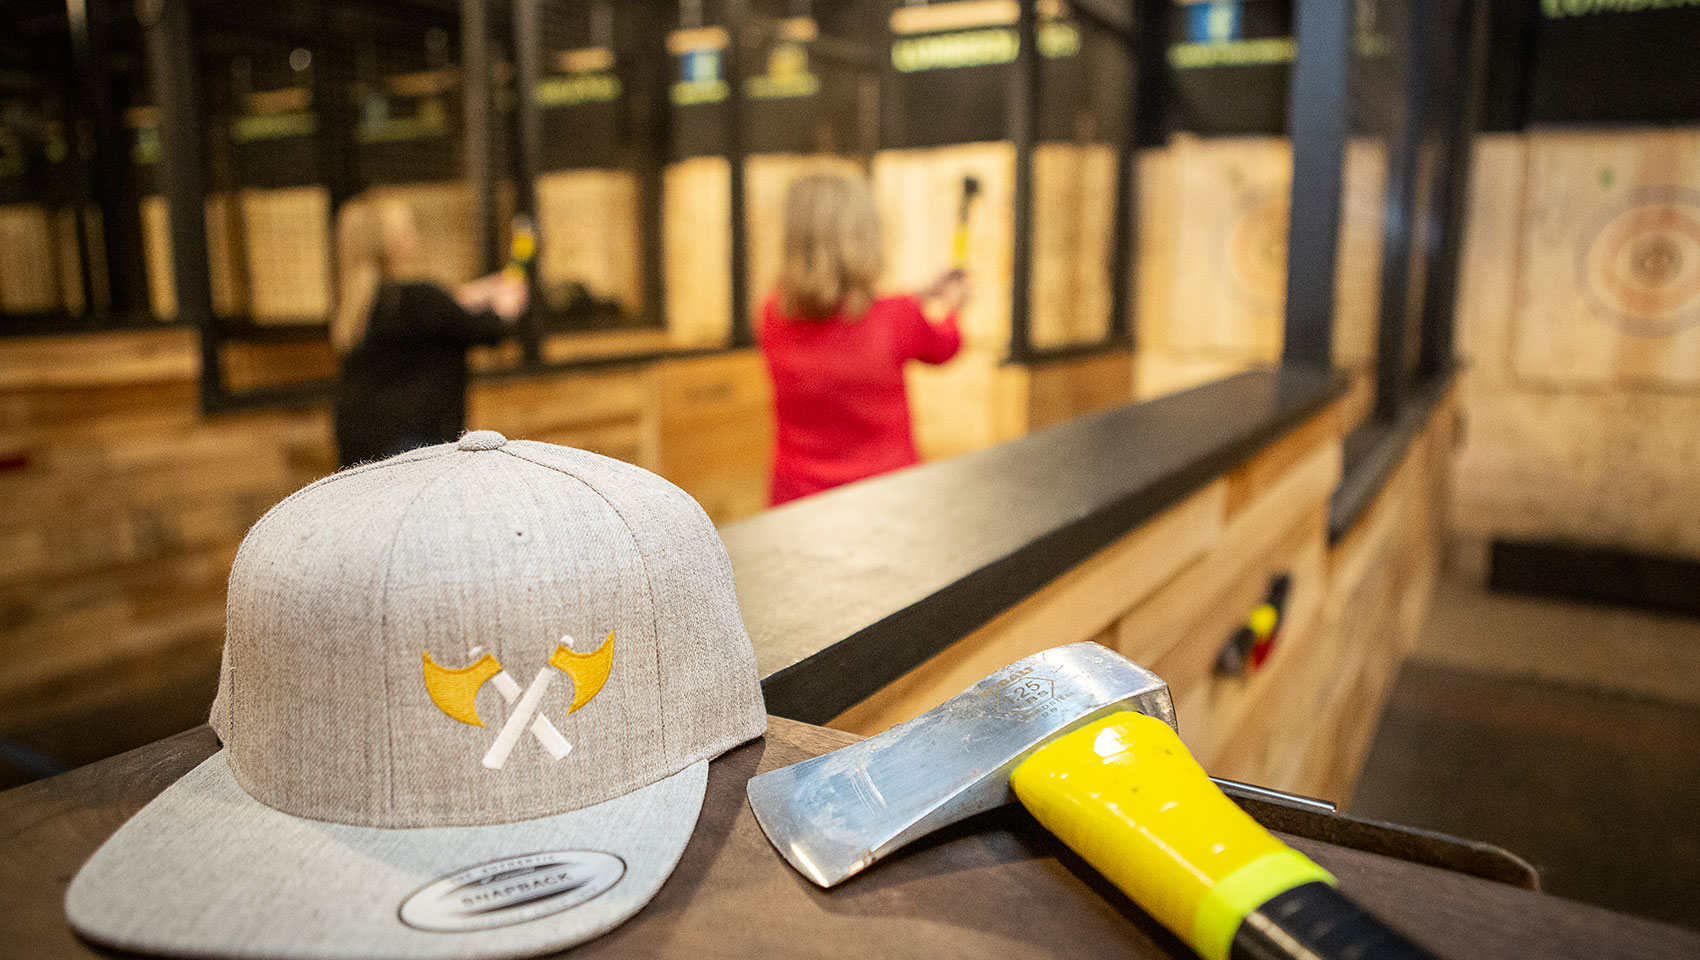 Axe throwing range with gray hat and axe